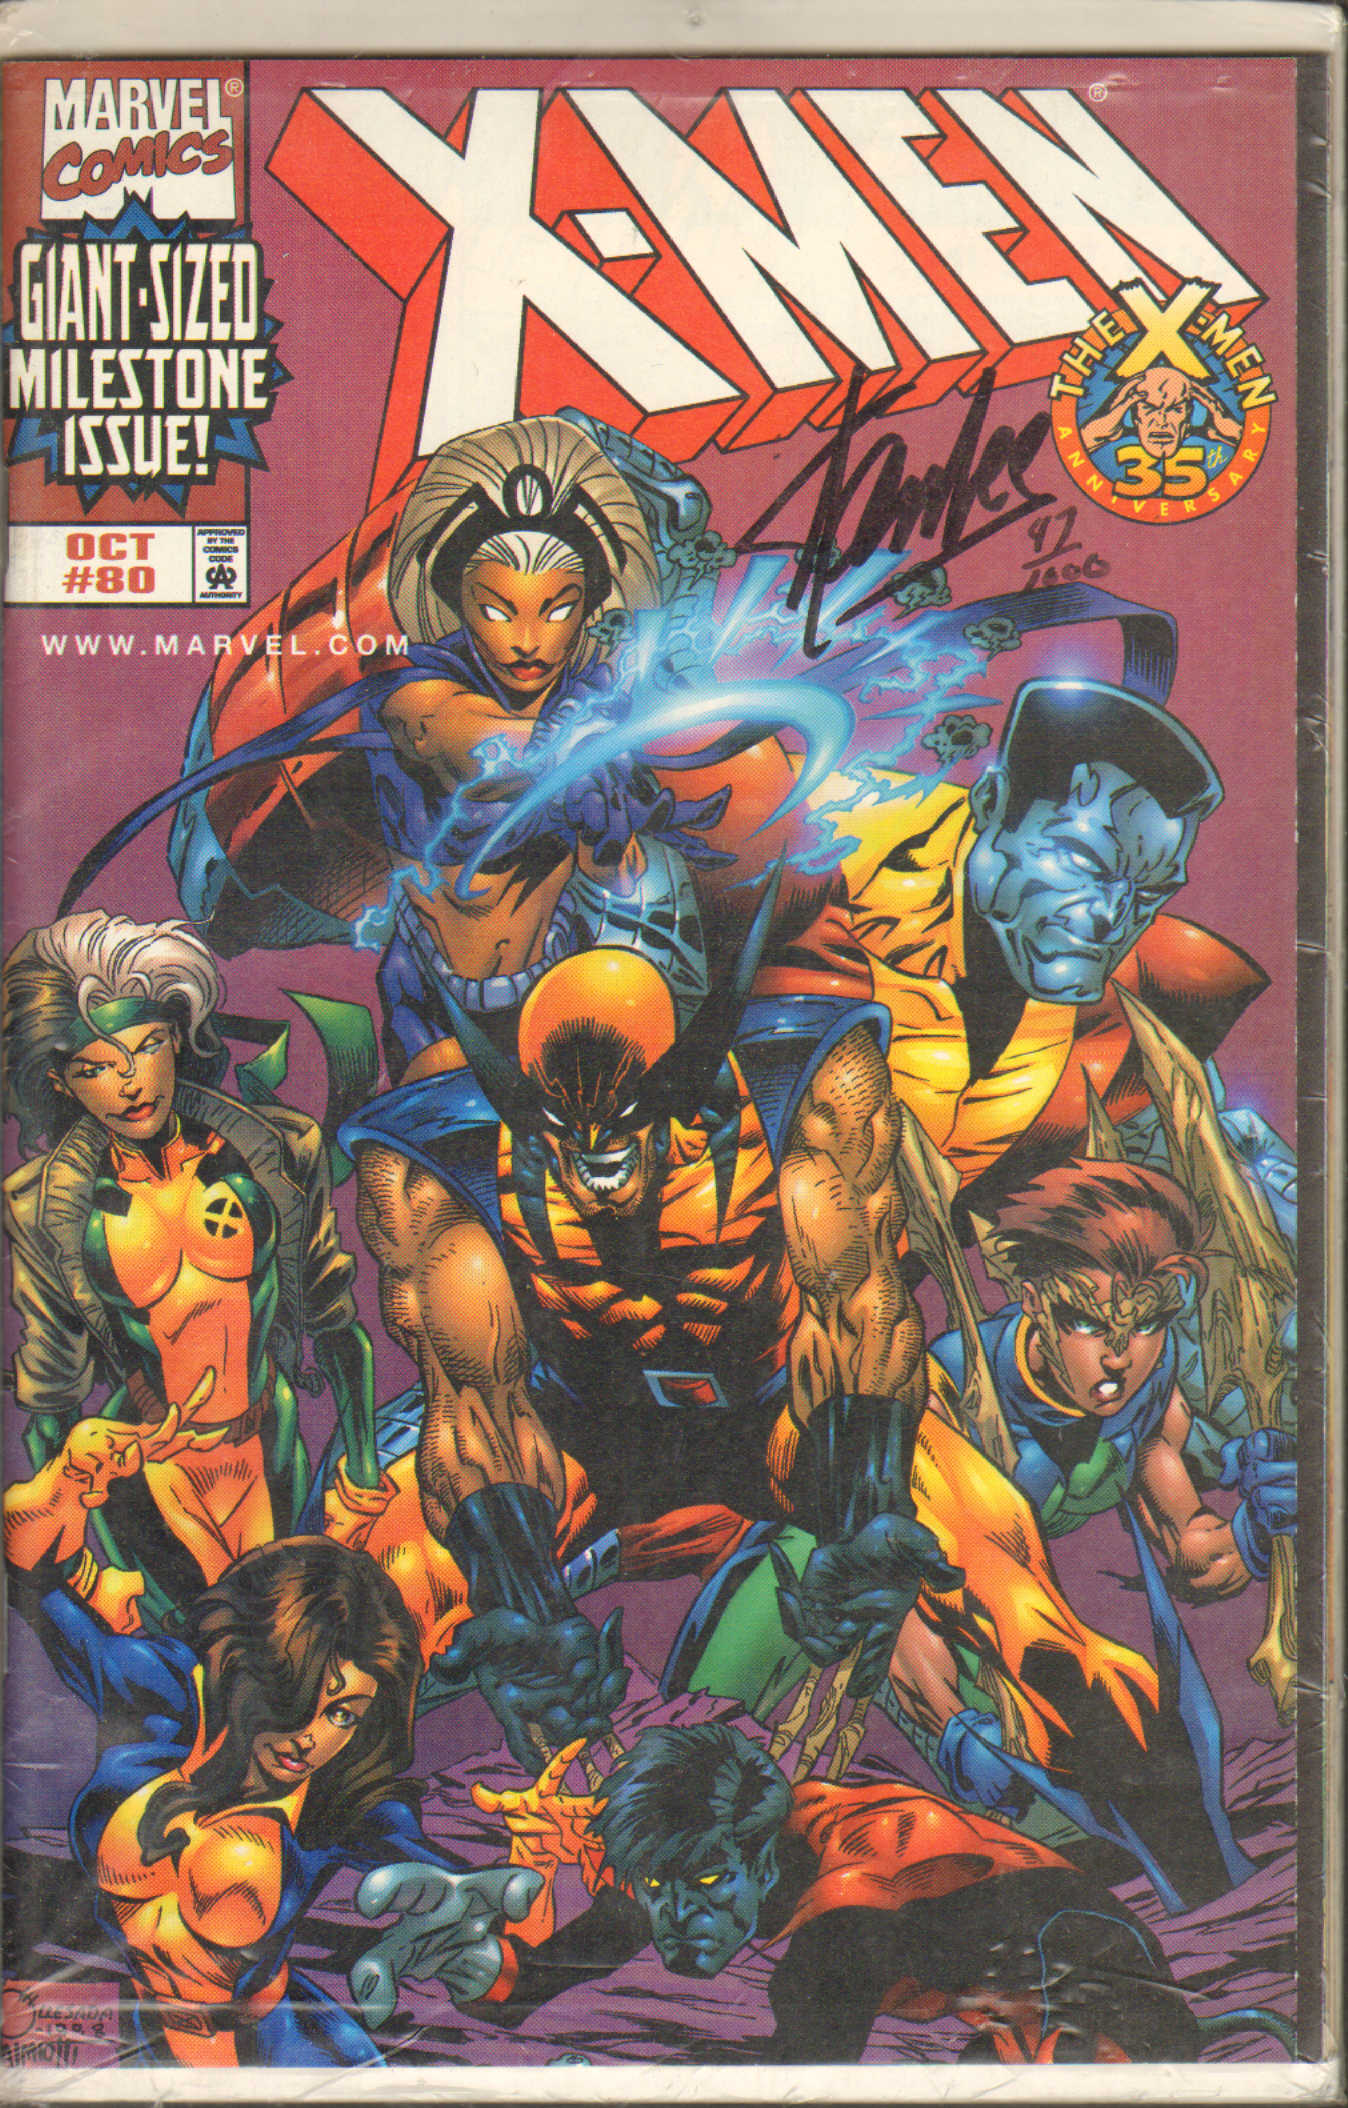 Stan Lee Autographed Signed X-Men 35th Anniversary Comic